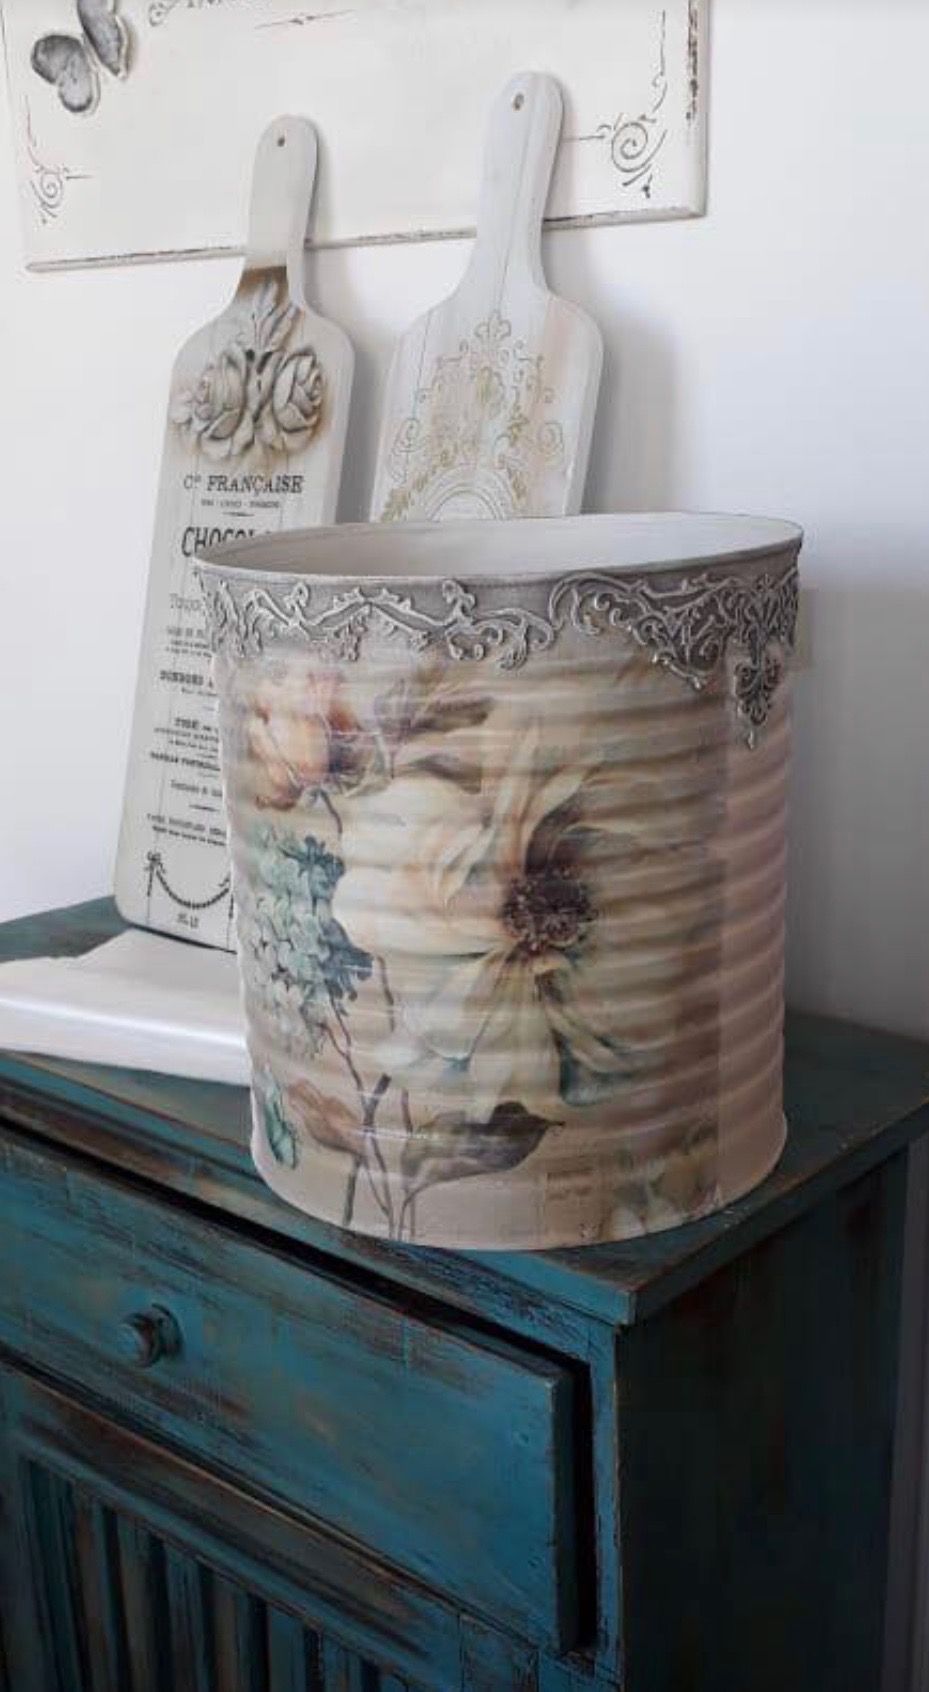 Tin Can Art, Tin Can Crafts, Container Flowers, Gisele, Stenciling, Tissue Boxes, Coffee Cans, Tins, Mason Jars #tincans